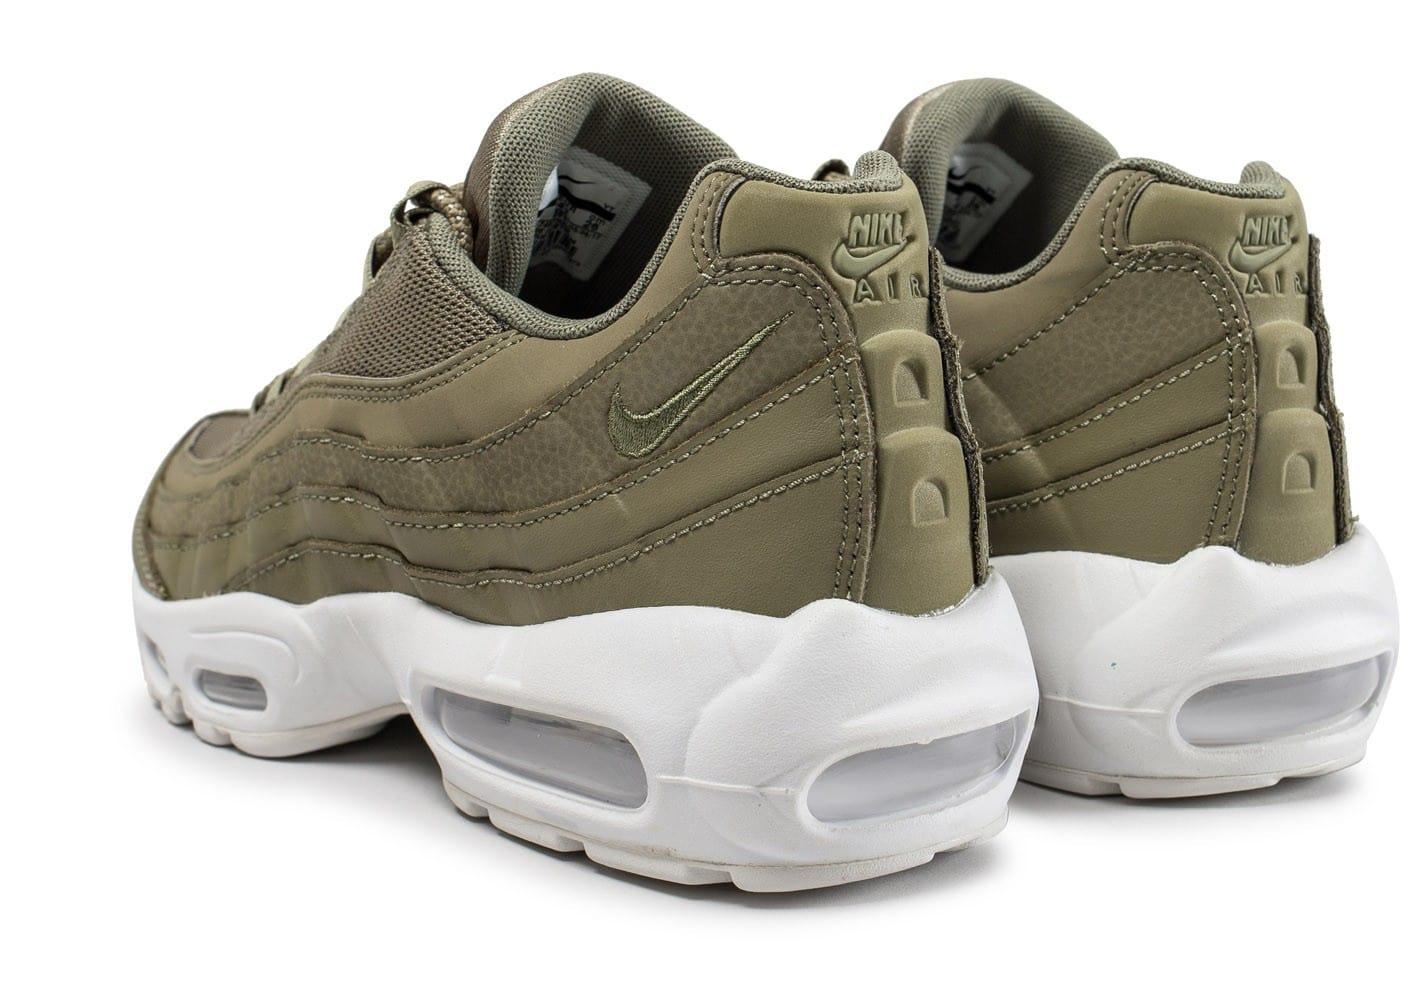 official photos 0c161 4e64f ... Chaussures Nike Air Max 95 Essential kaki vue dessous ...